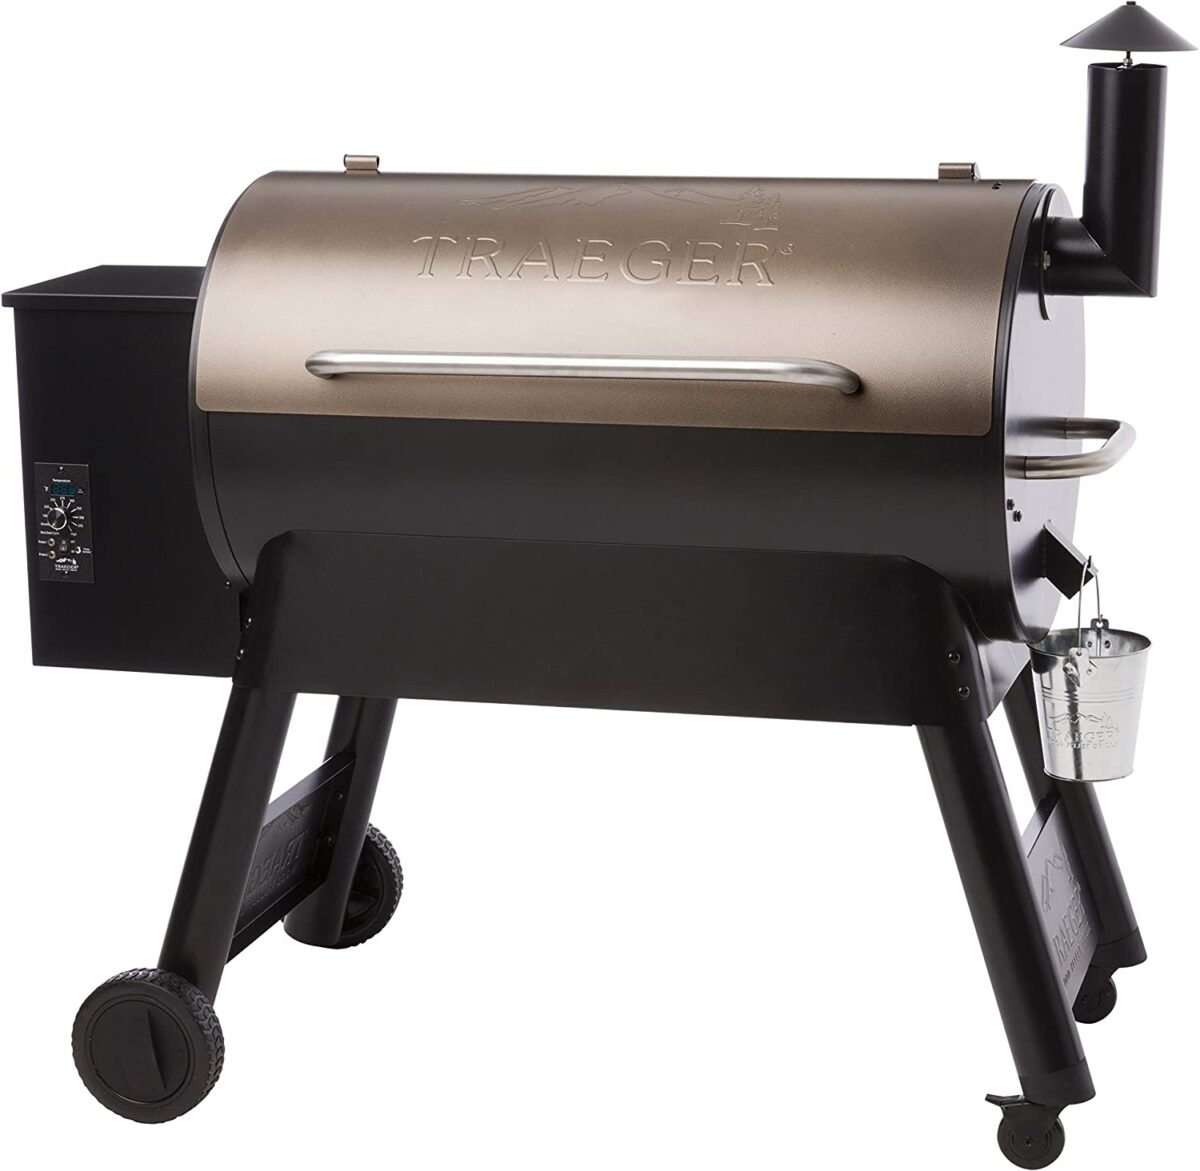 Traeger Grills Pro Series 34 Electric Wood Pellet Grill and Smoker